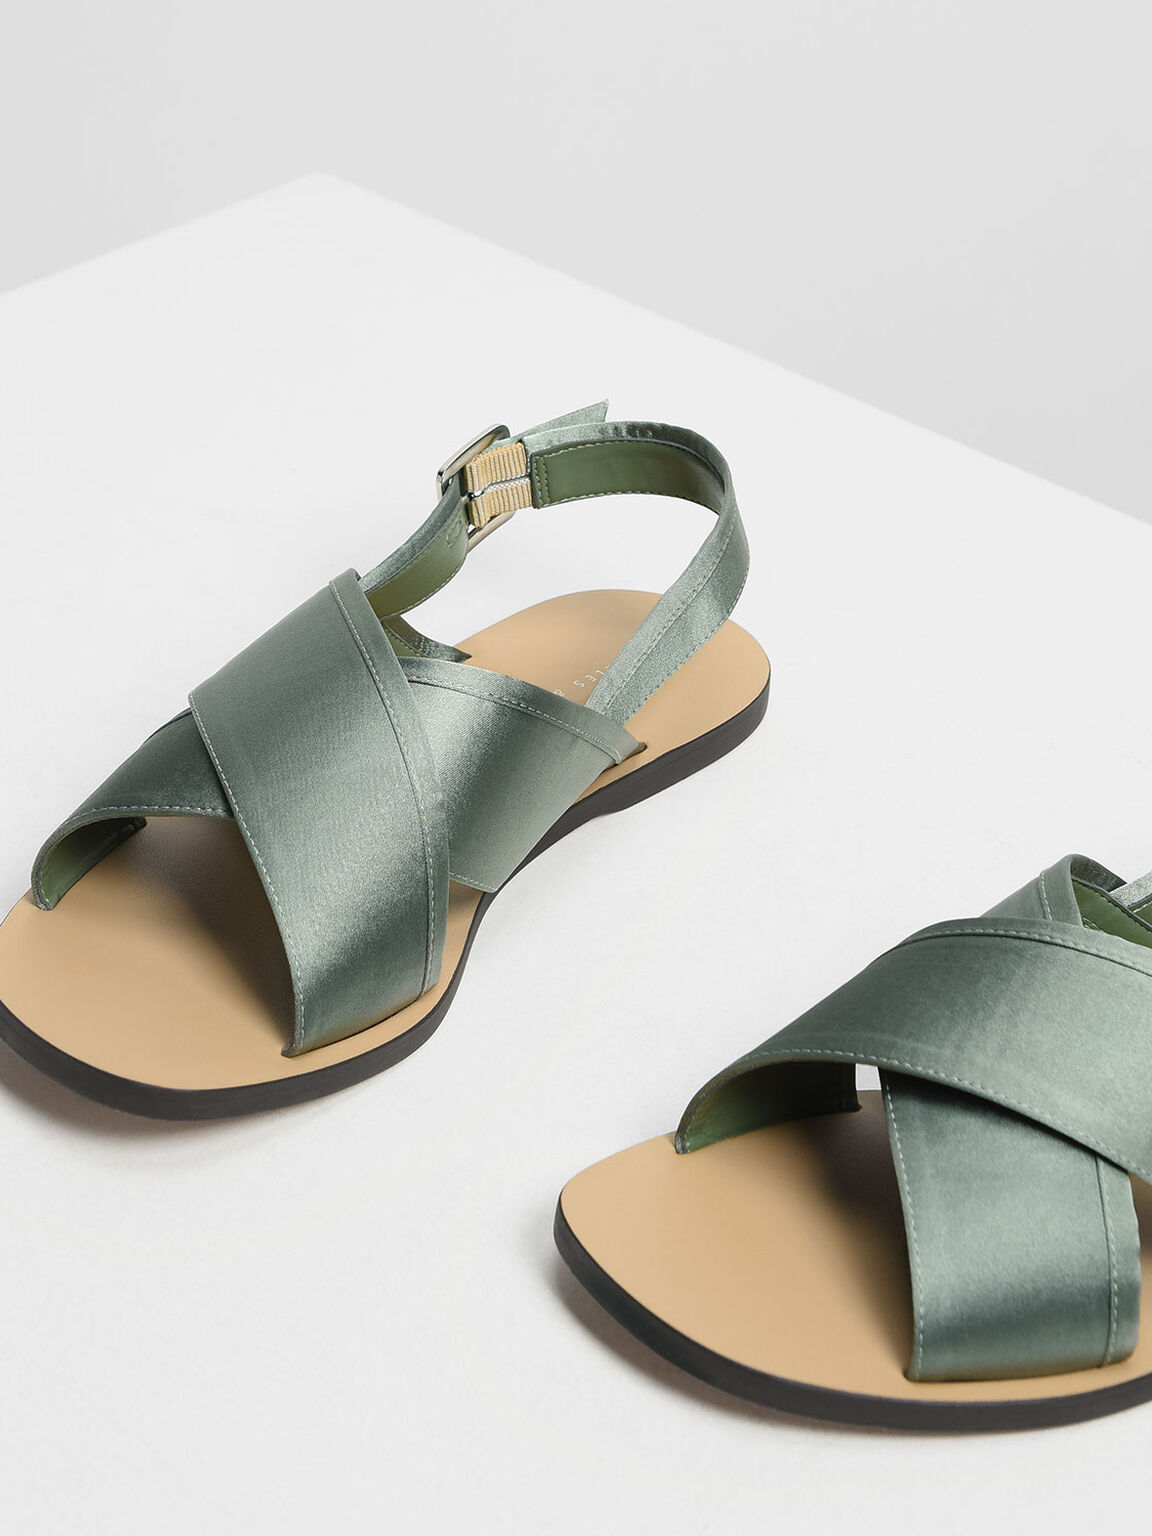 Satin Criss Cross Sandals, Green, hi-res